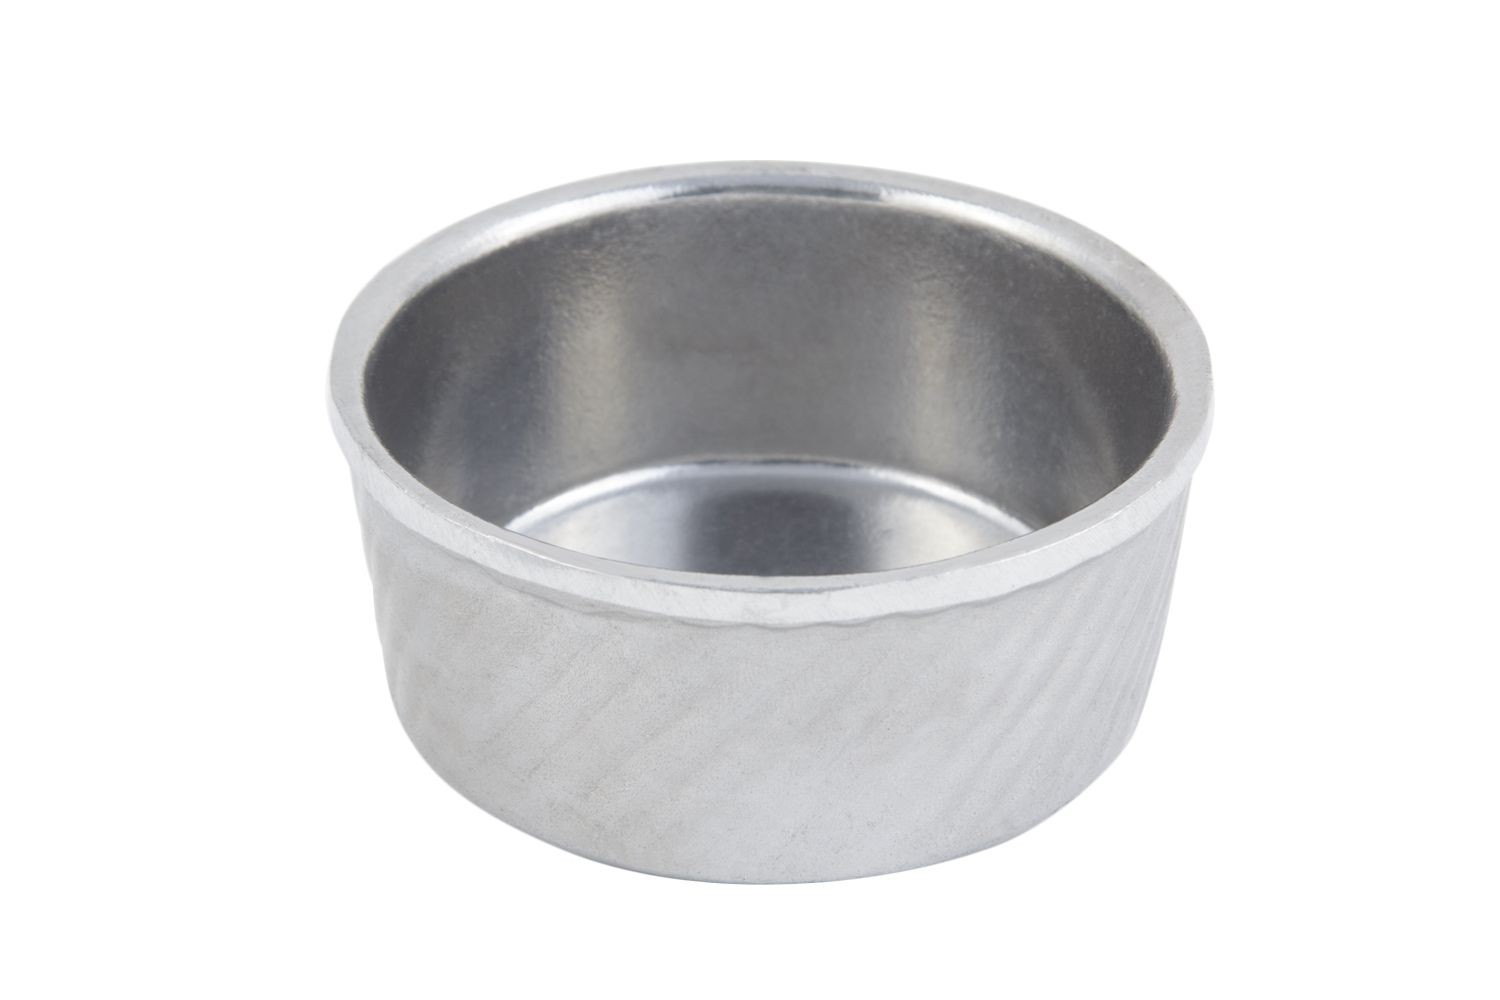 Bon Chef 3037P Souffle Dish, Pewter Glo 12 oz., Set of 6